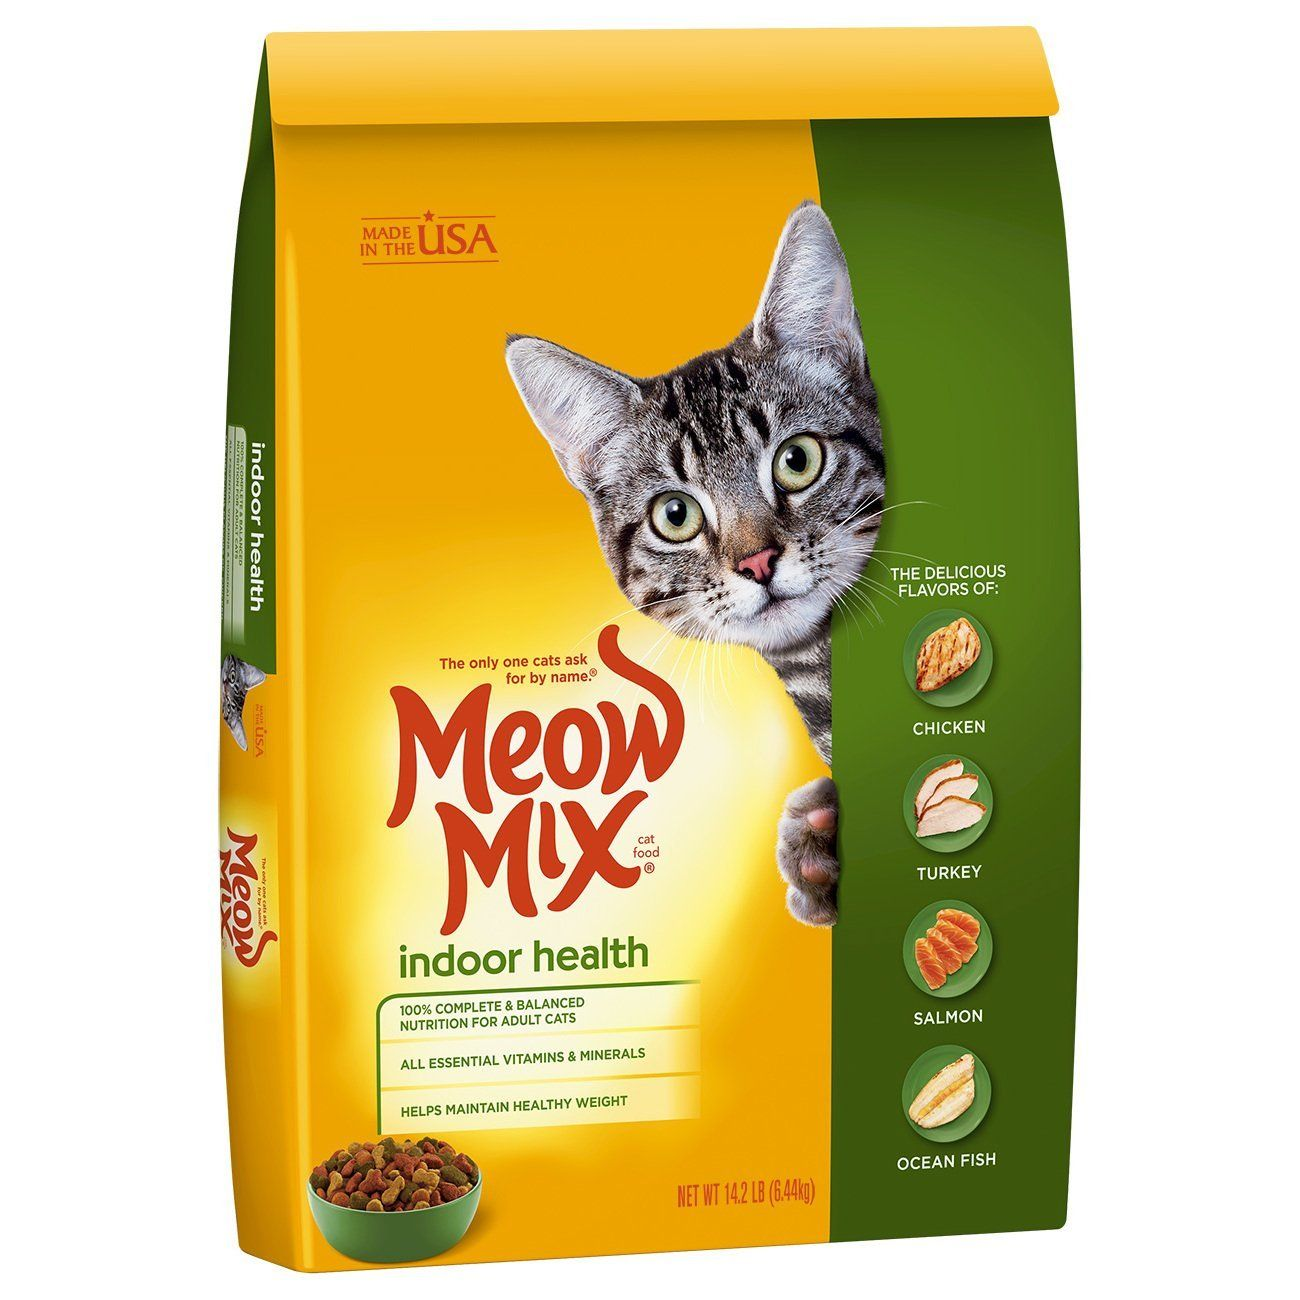 Meow Mix Indoor Health Dry Cat Food Special Cat Product Just For